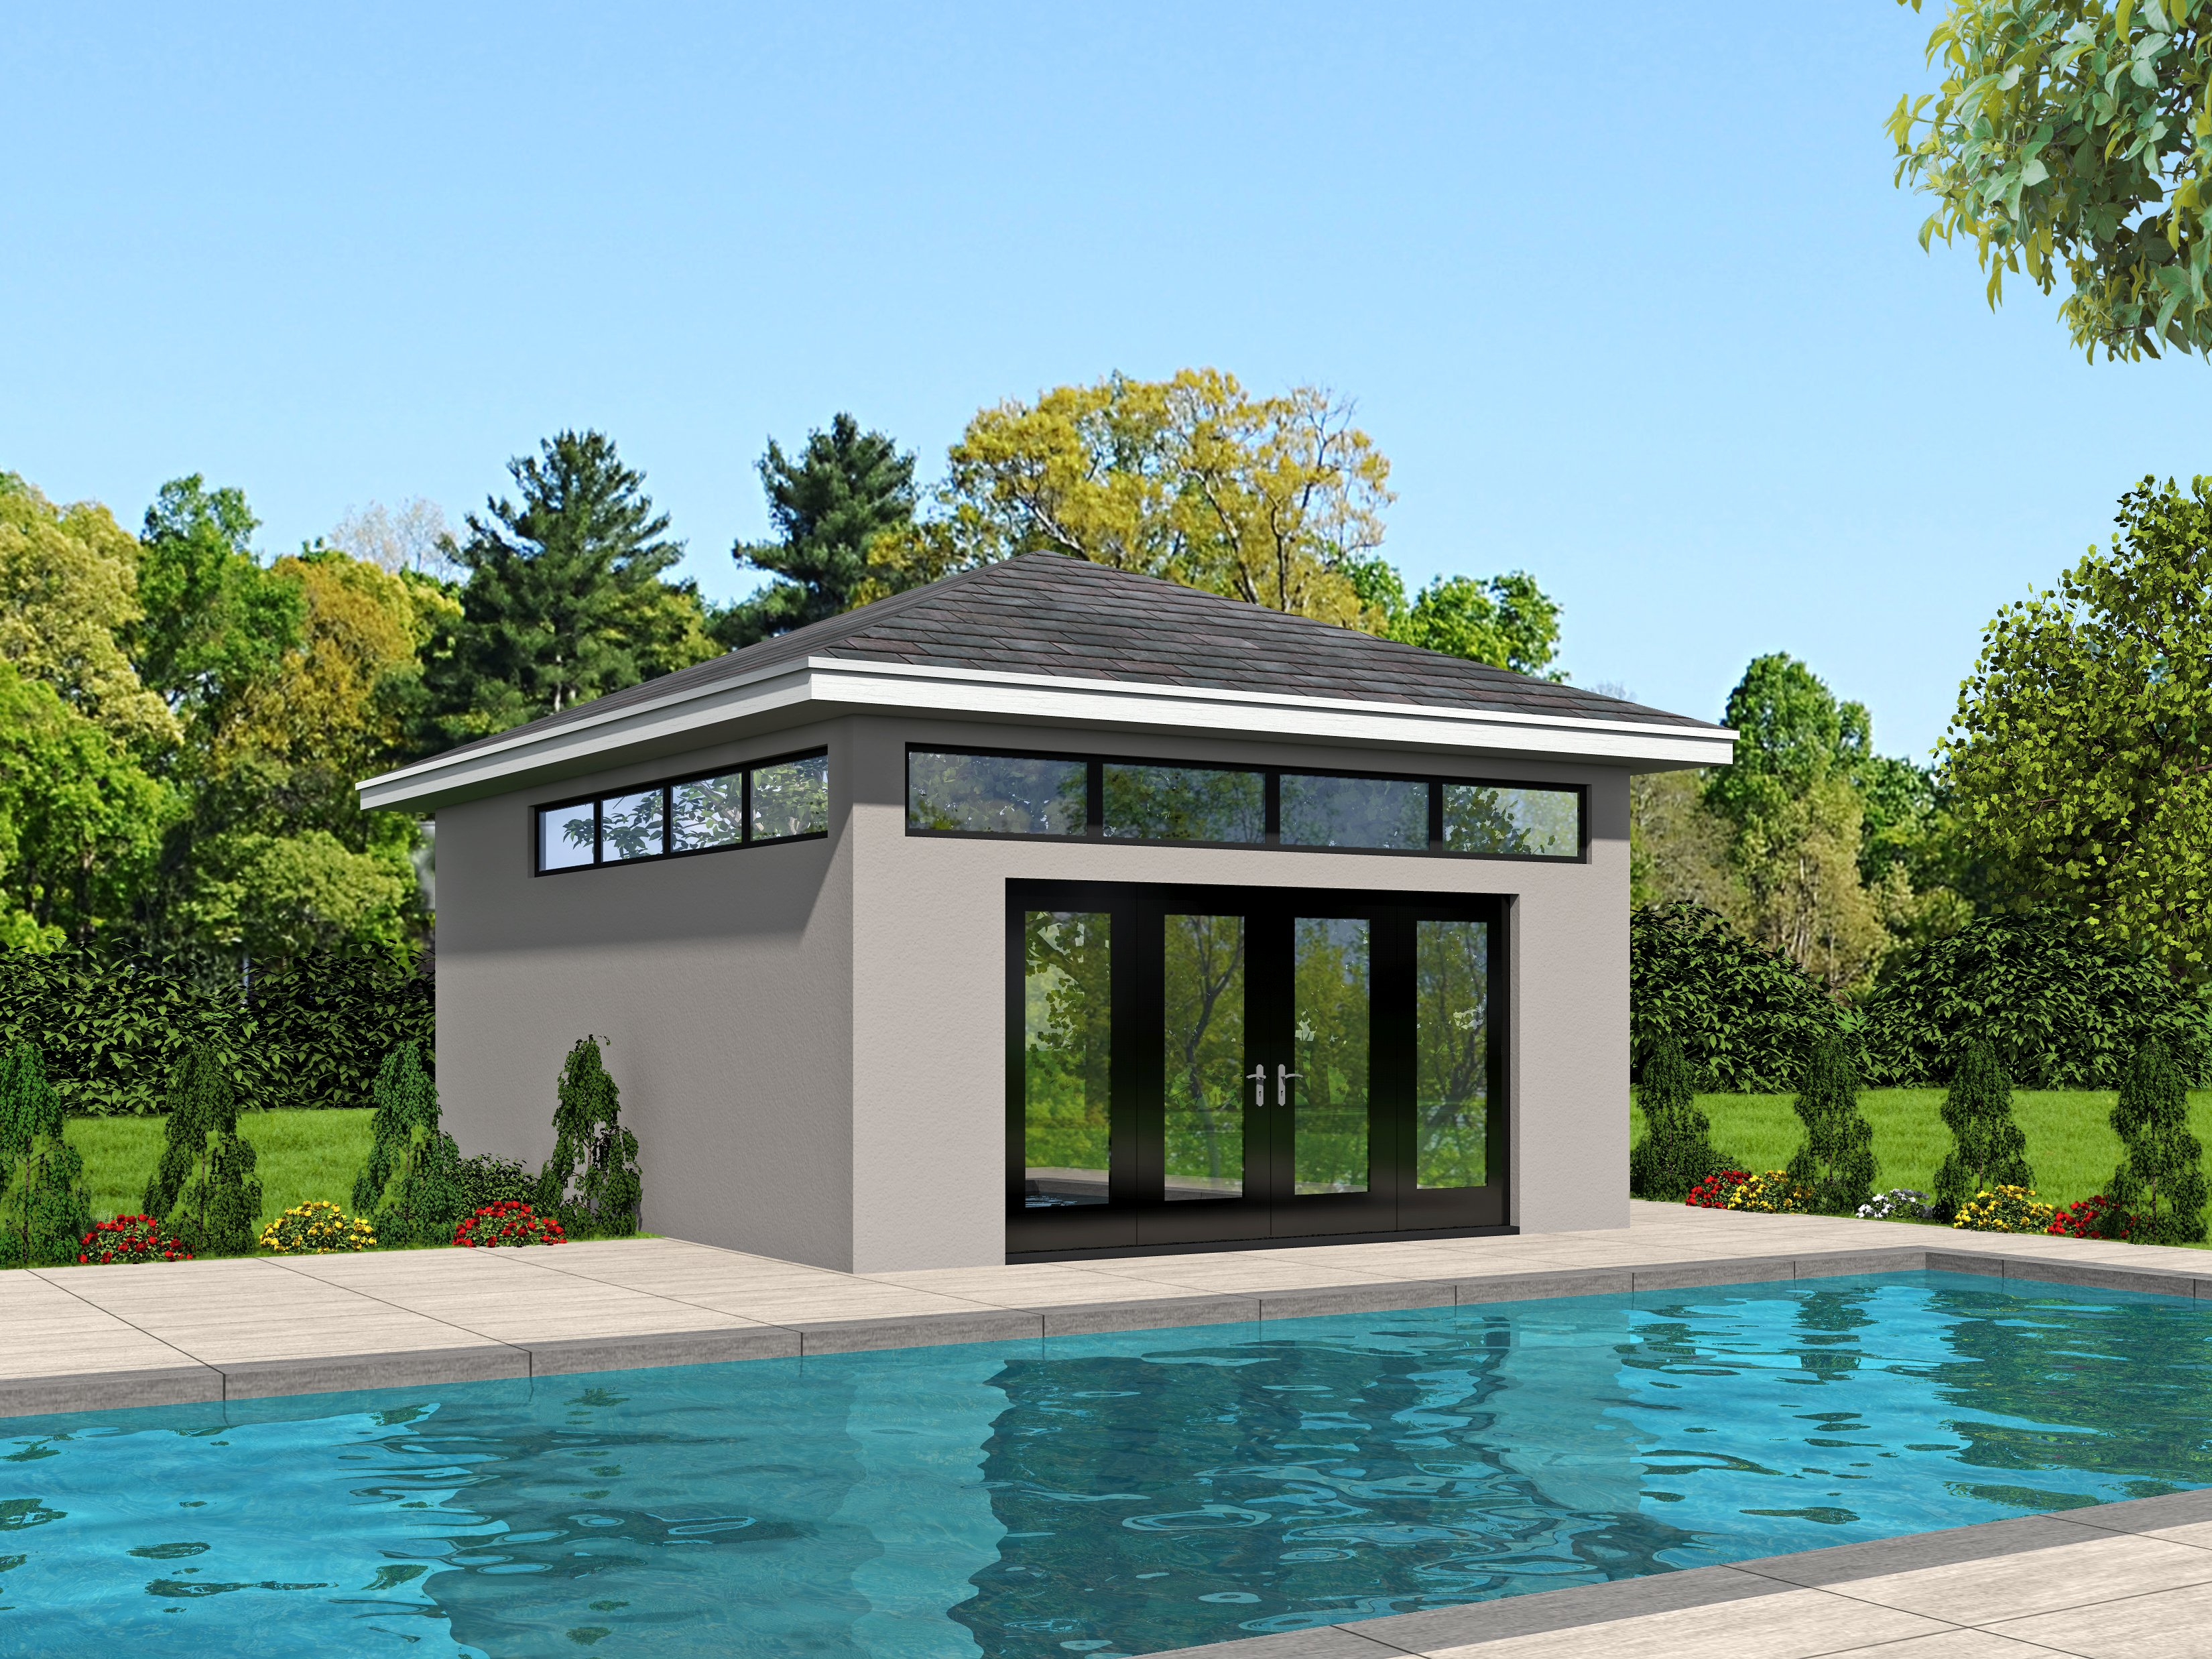 Pool house plans house plans plus for Pool house plan